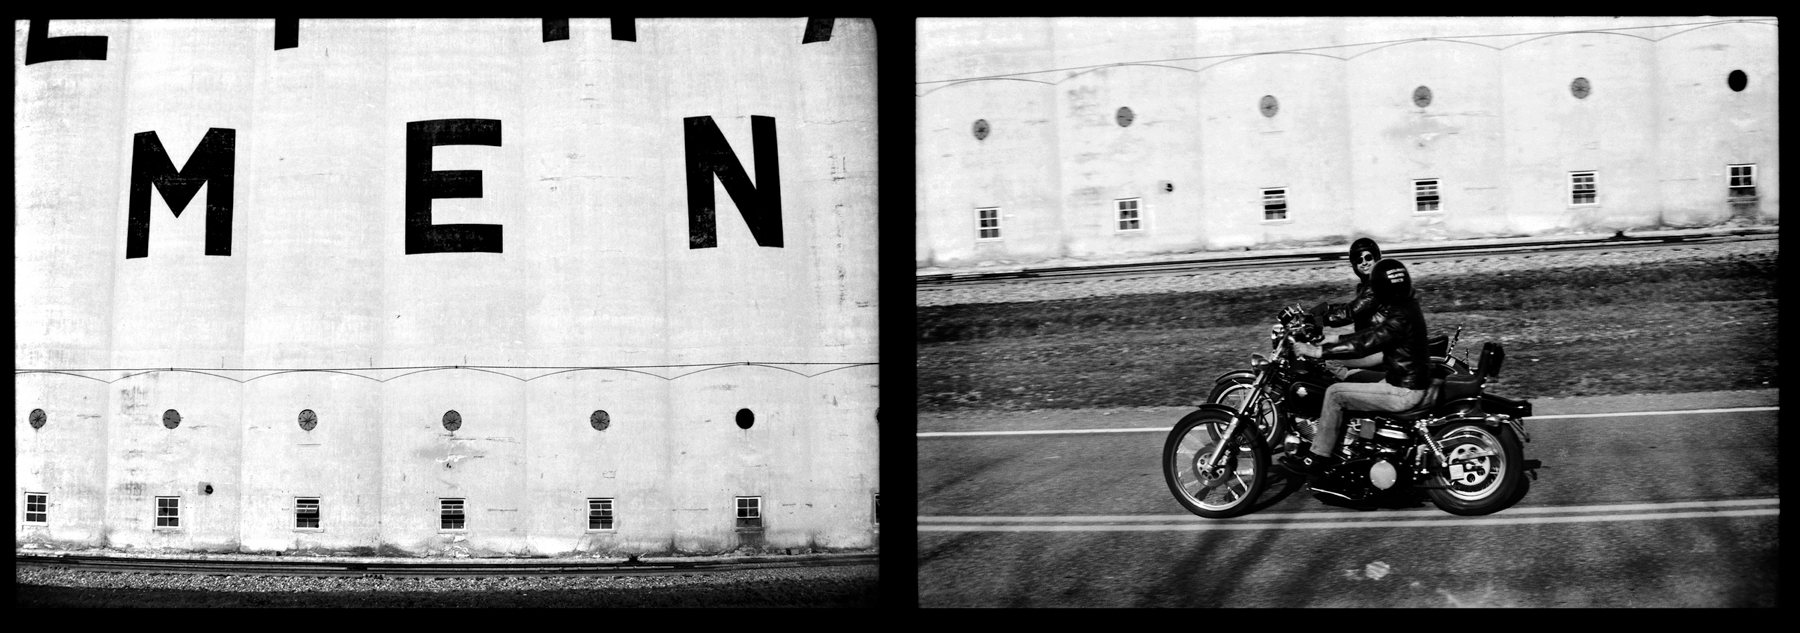 Route 611 near Easton, PA  (diptych) 1978